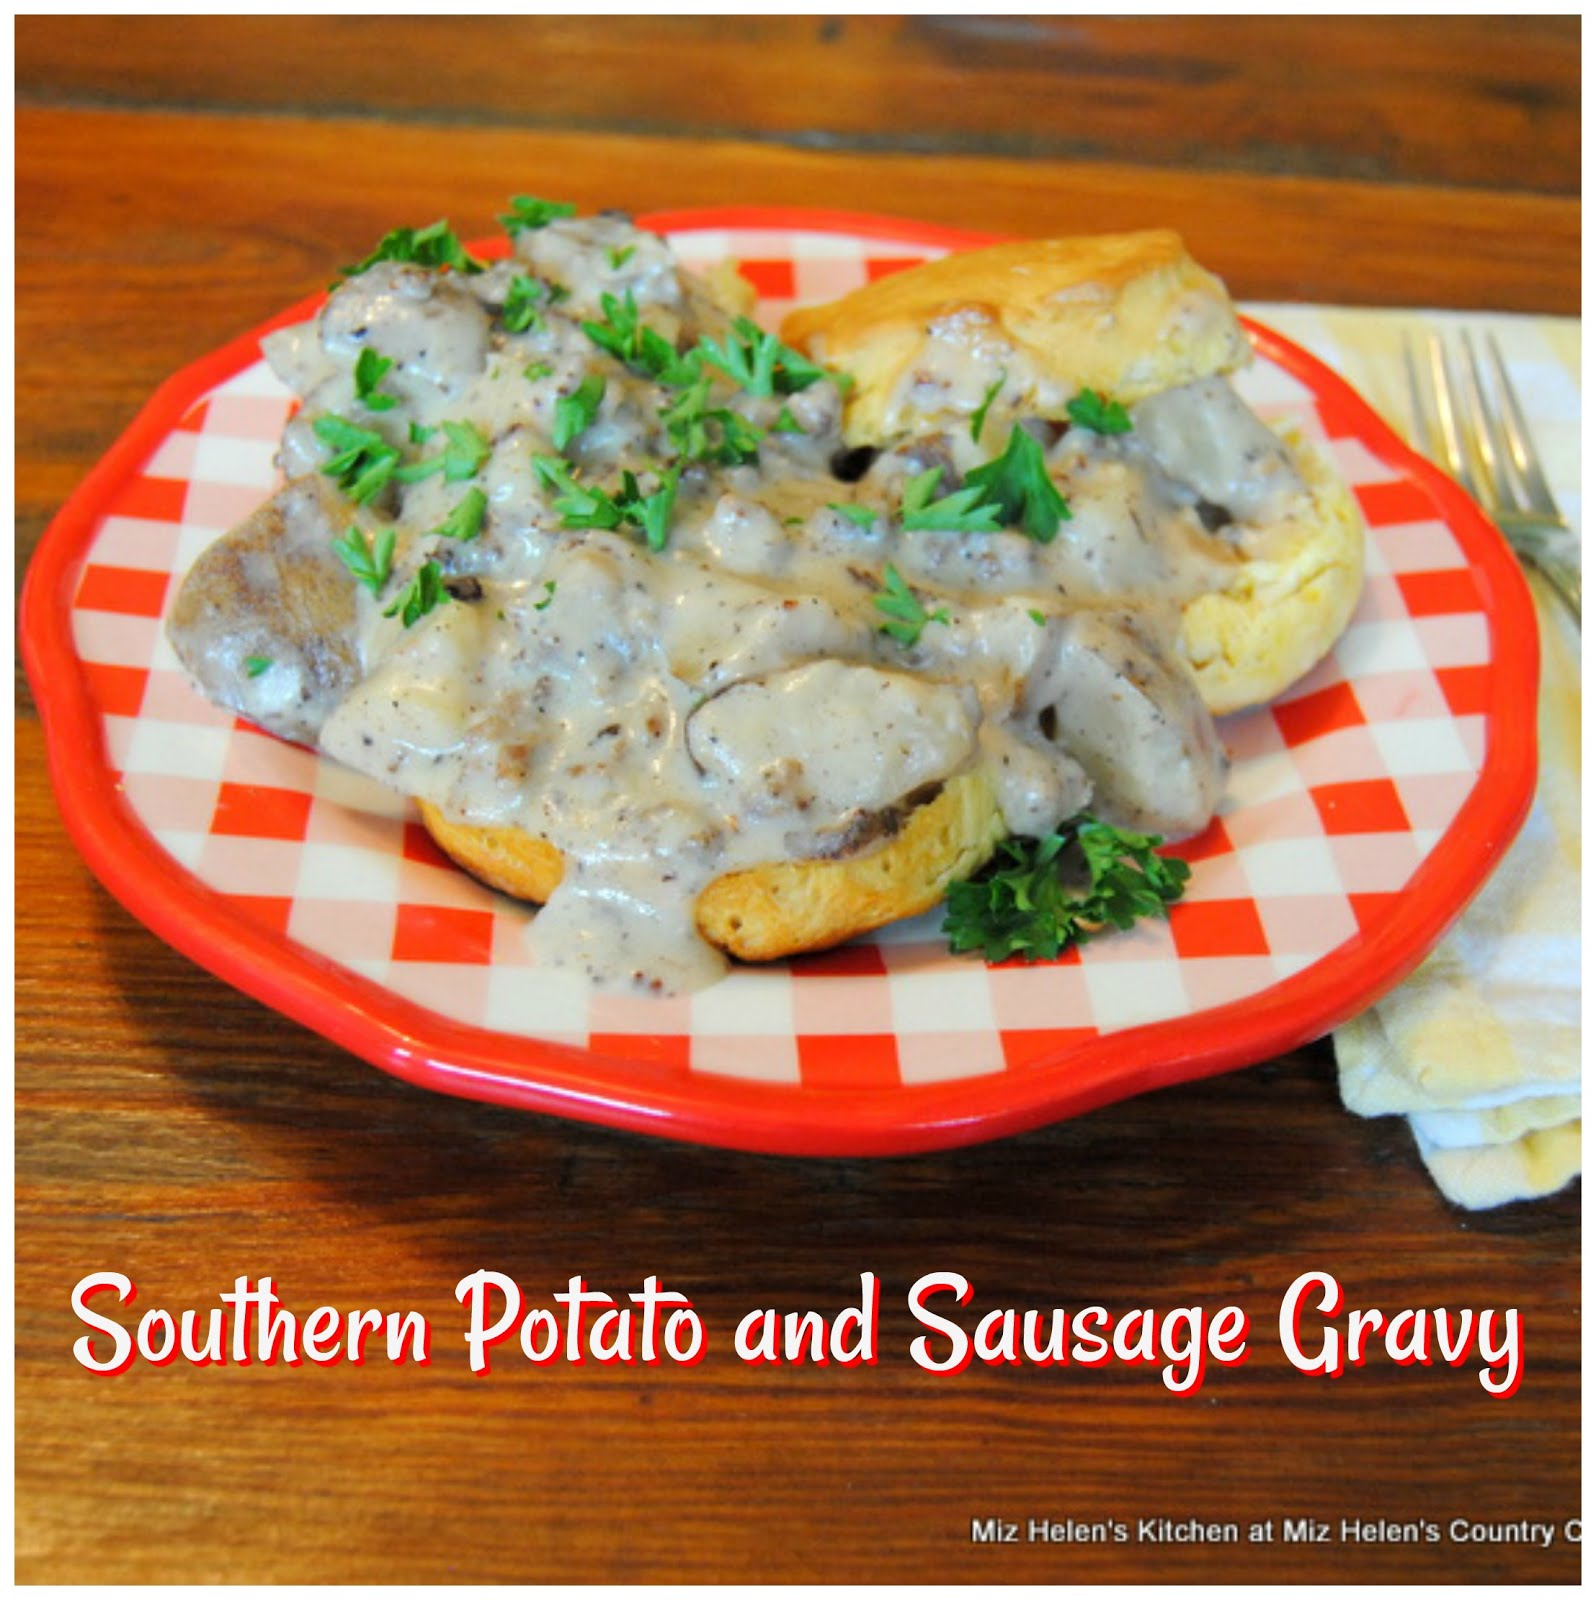 Southern Potato & Sausage Gravy with Buttermilk Biscuits